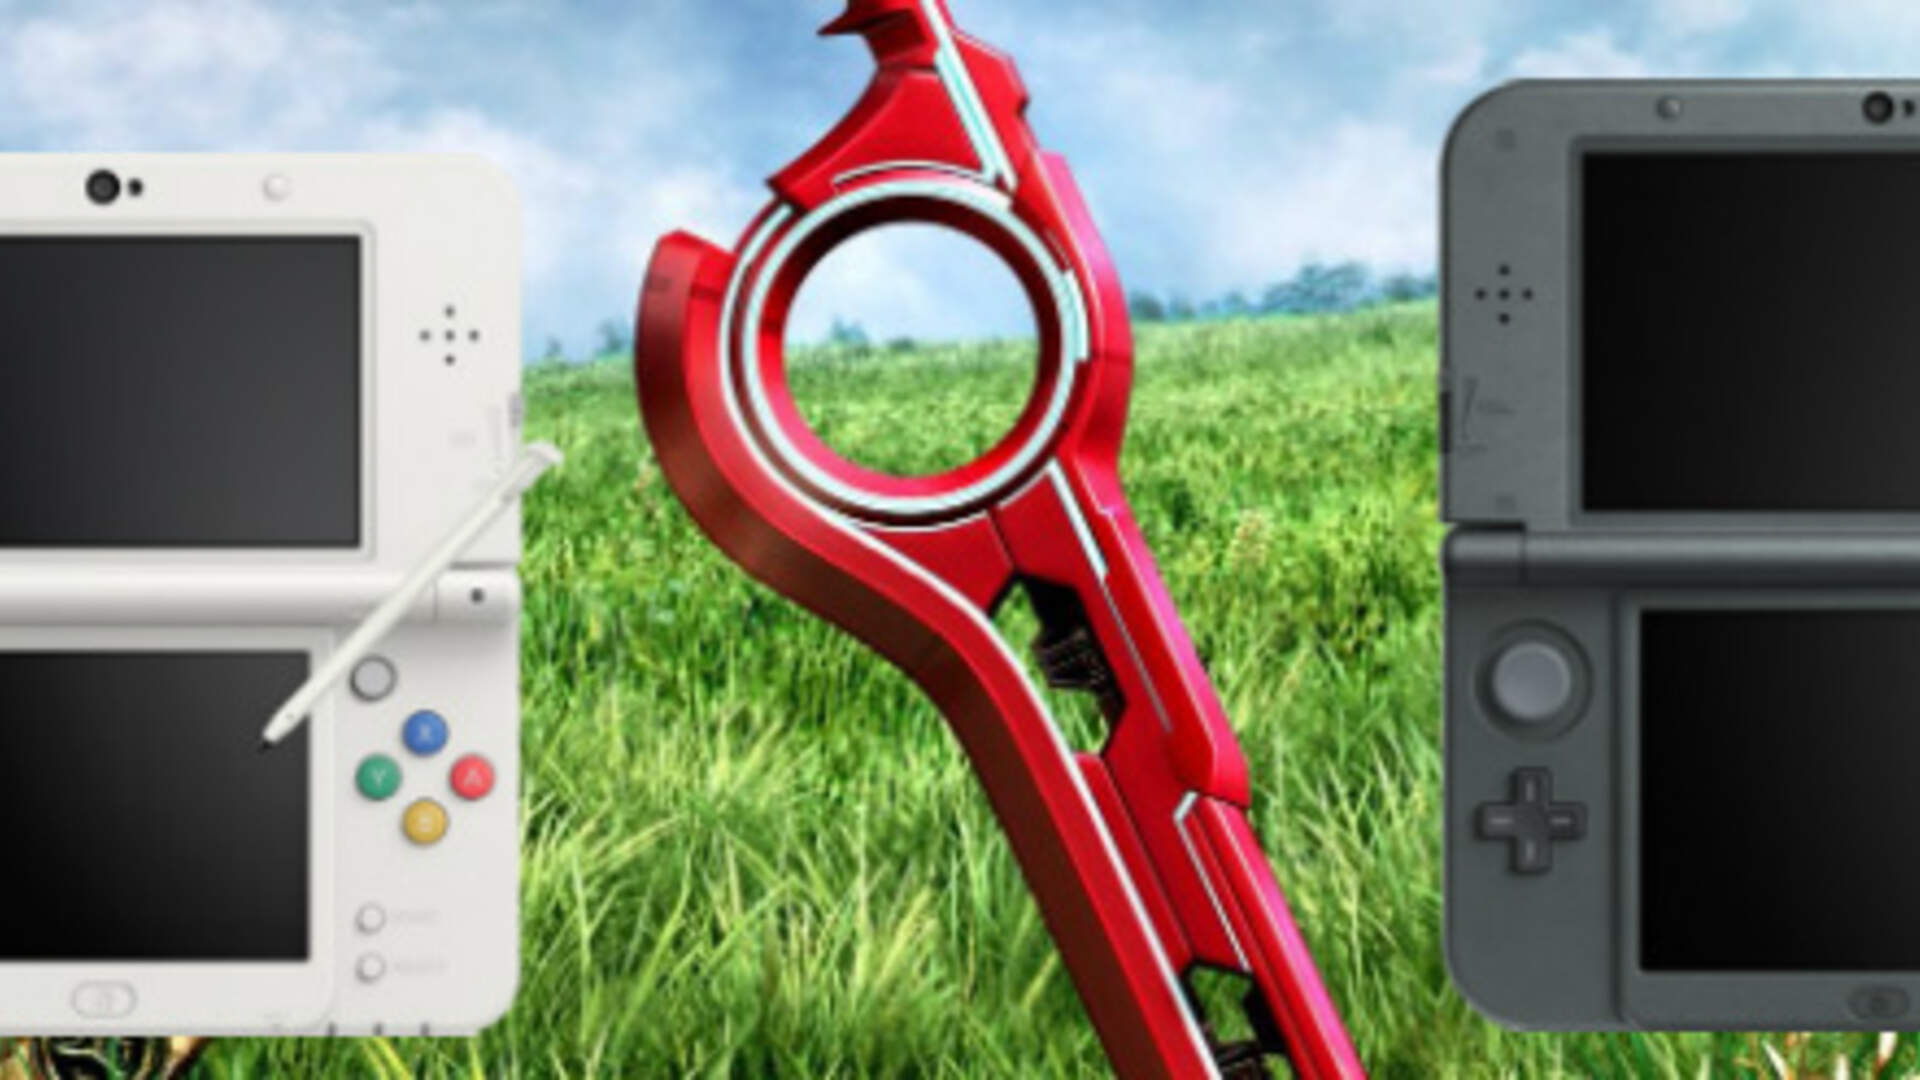 What's in the New Nintendo 3DS and 3DS XL?